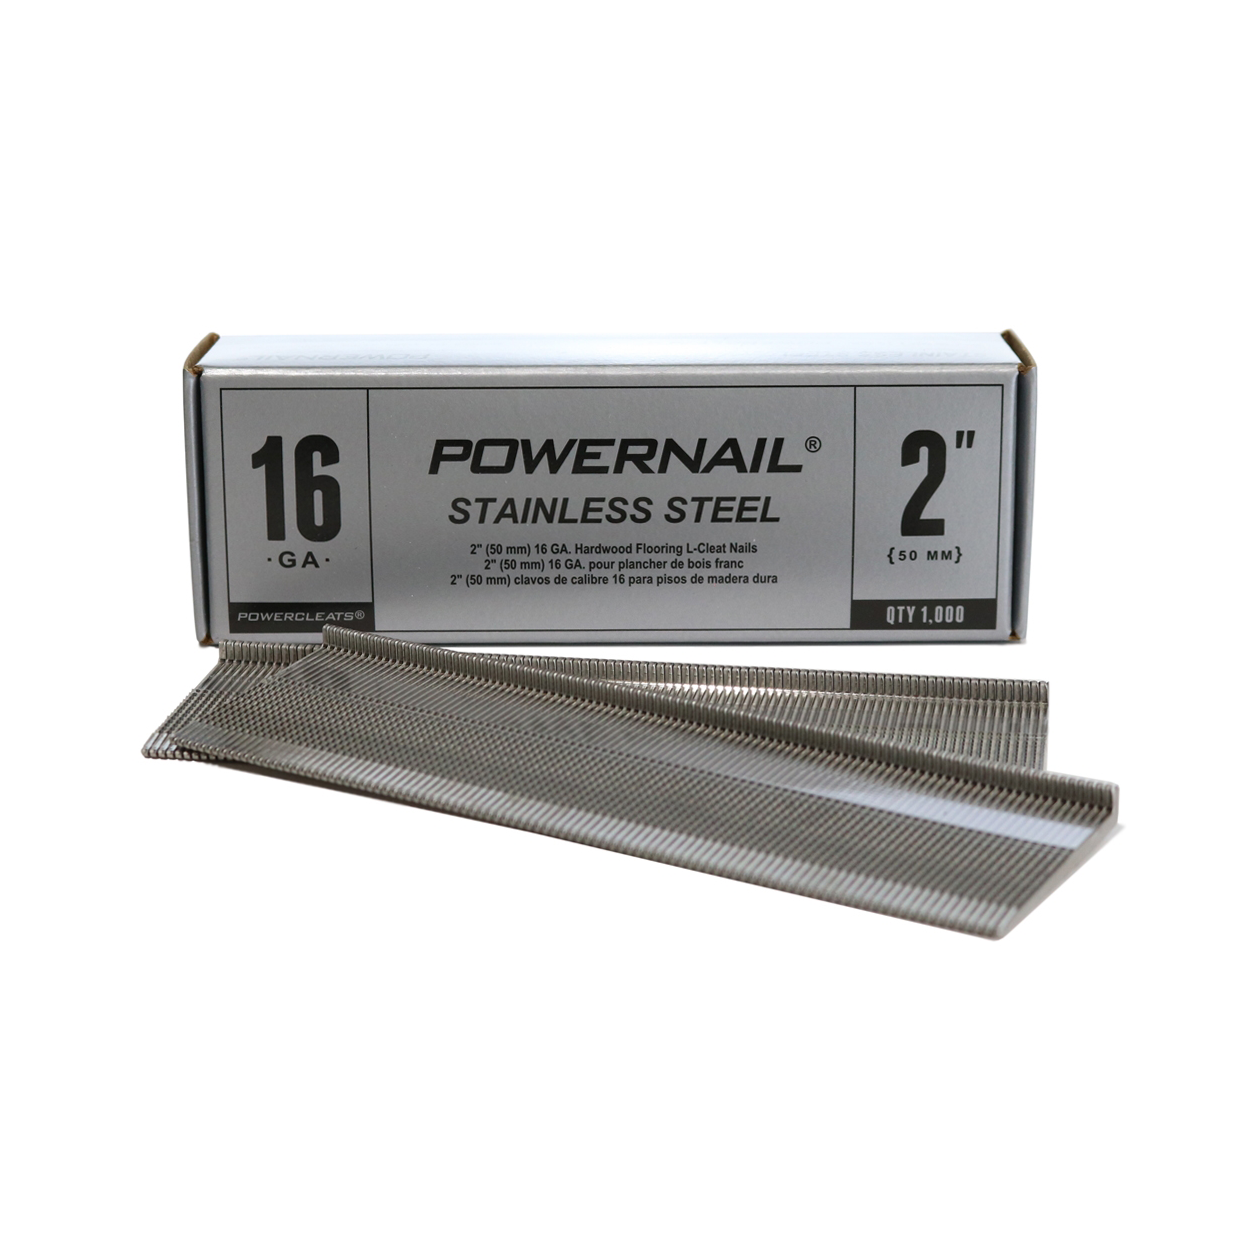 Powernail 16-Gauge Stainless Steel L Cleats